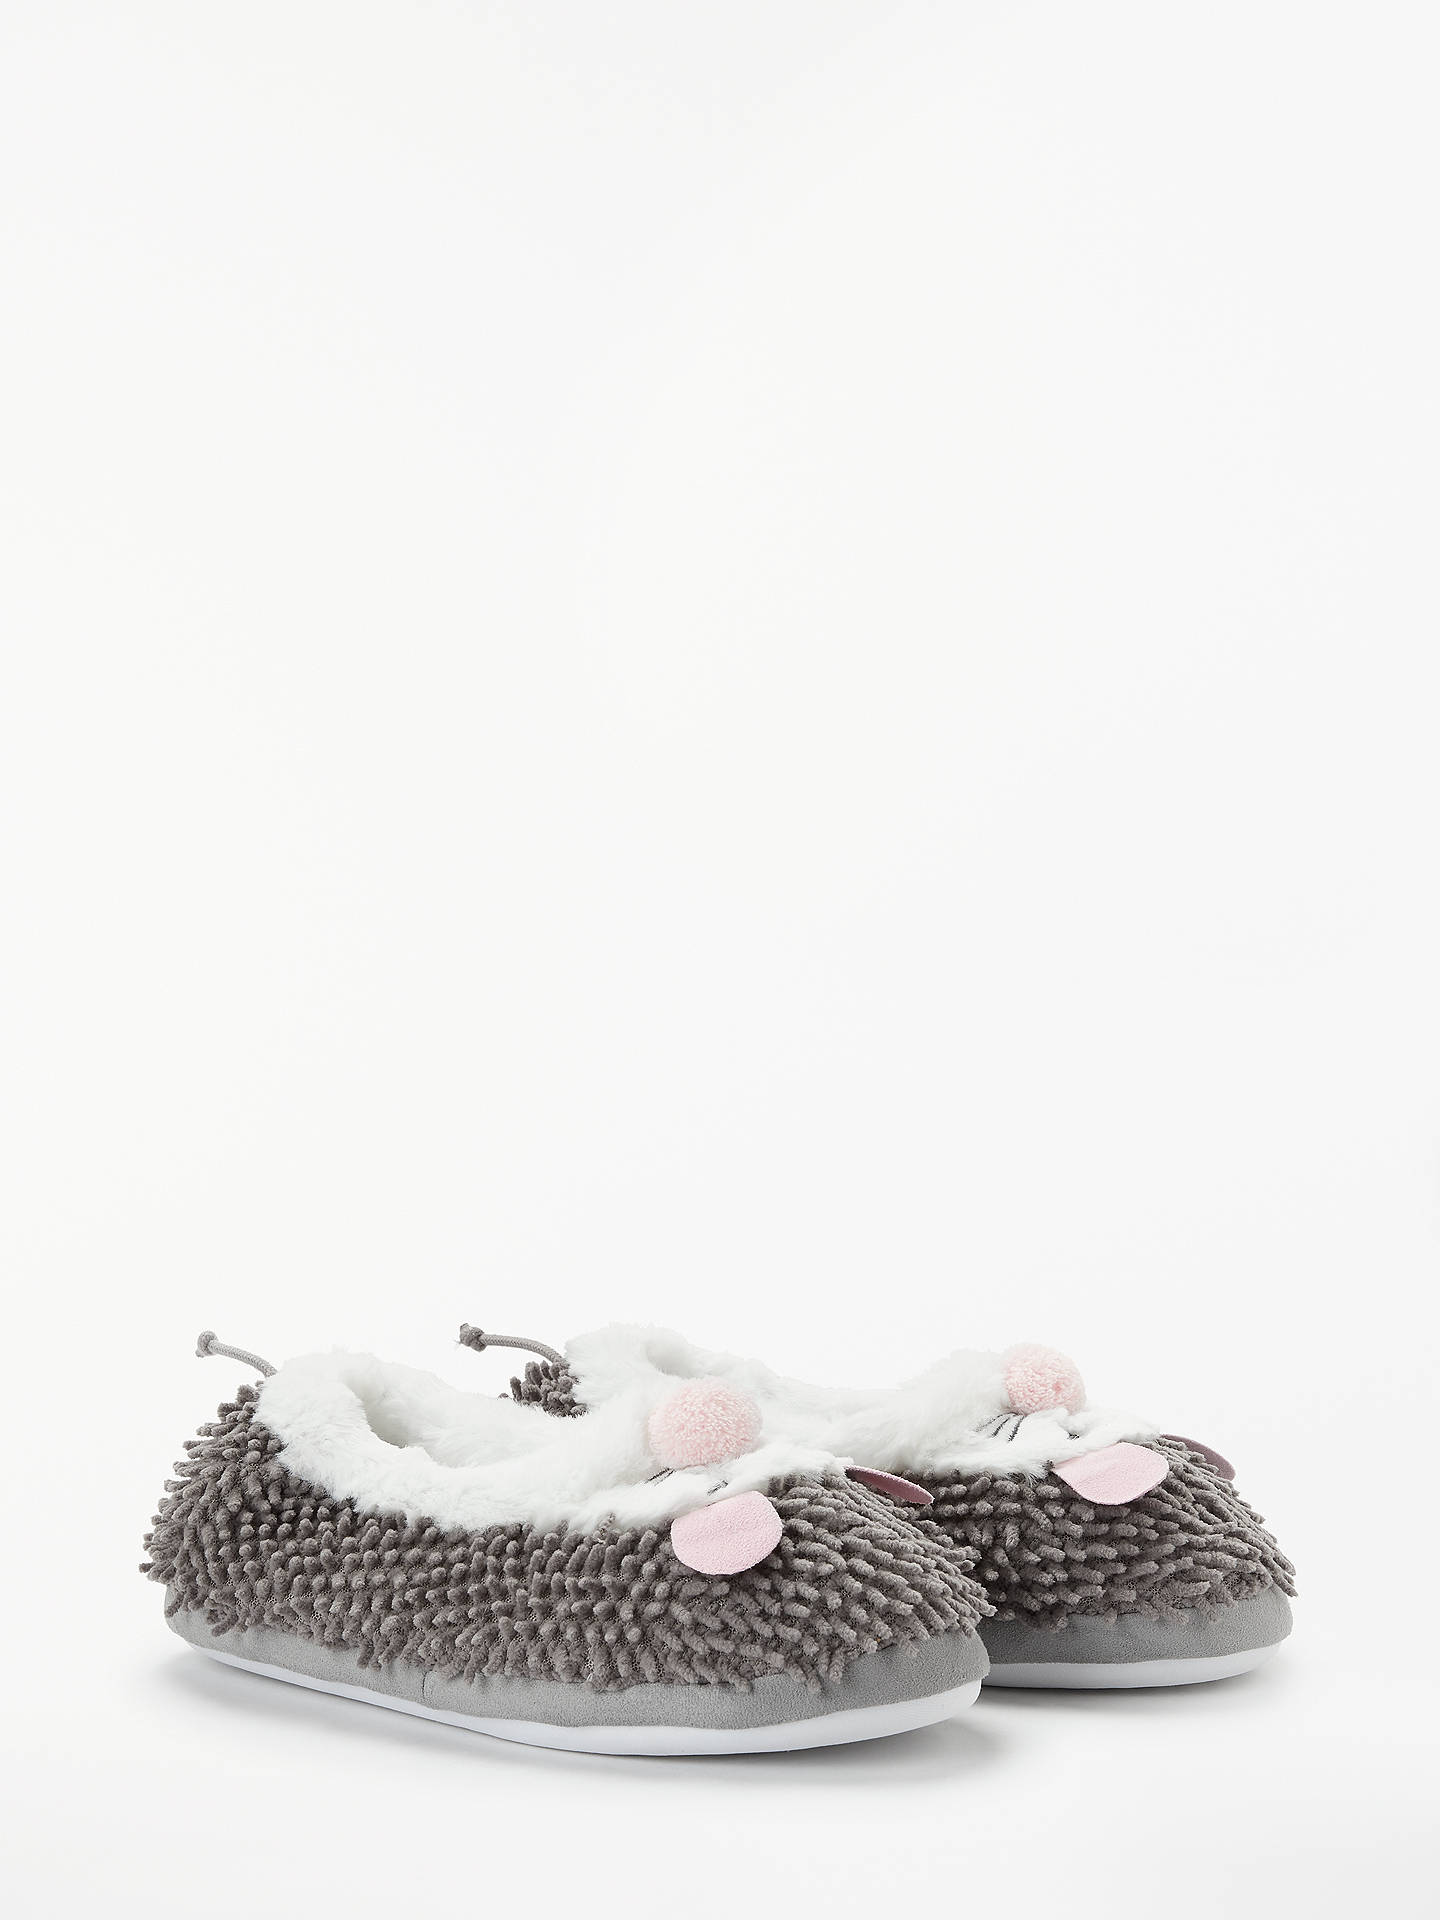 BuyJohn Lewis & Partners Children's Noodle Mouse Closed Back Slippers, Grey, 10 Jnr Online at johnlewis.com